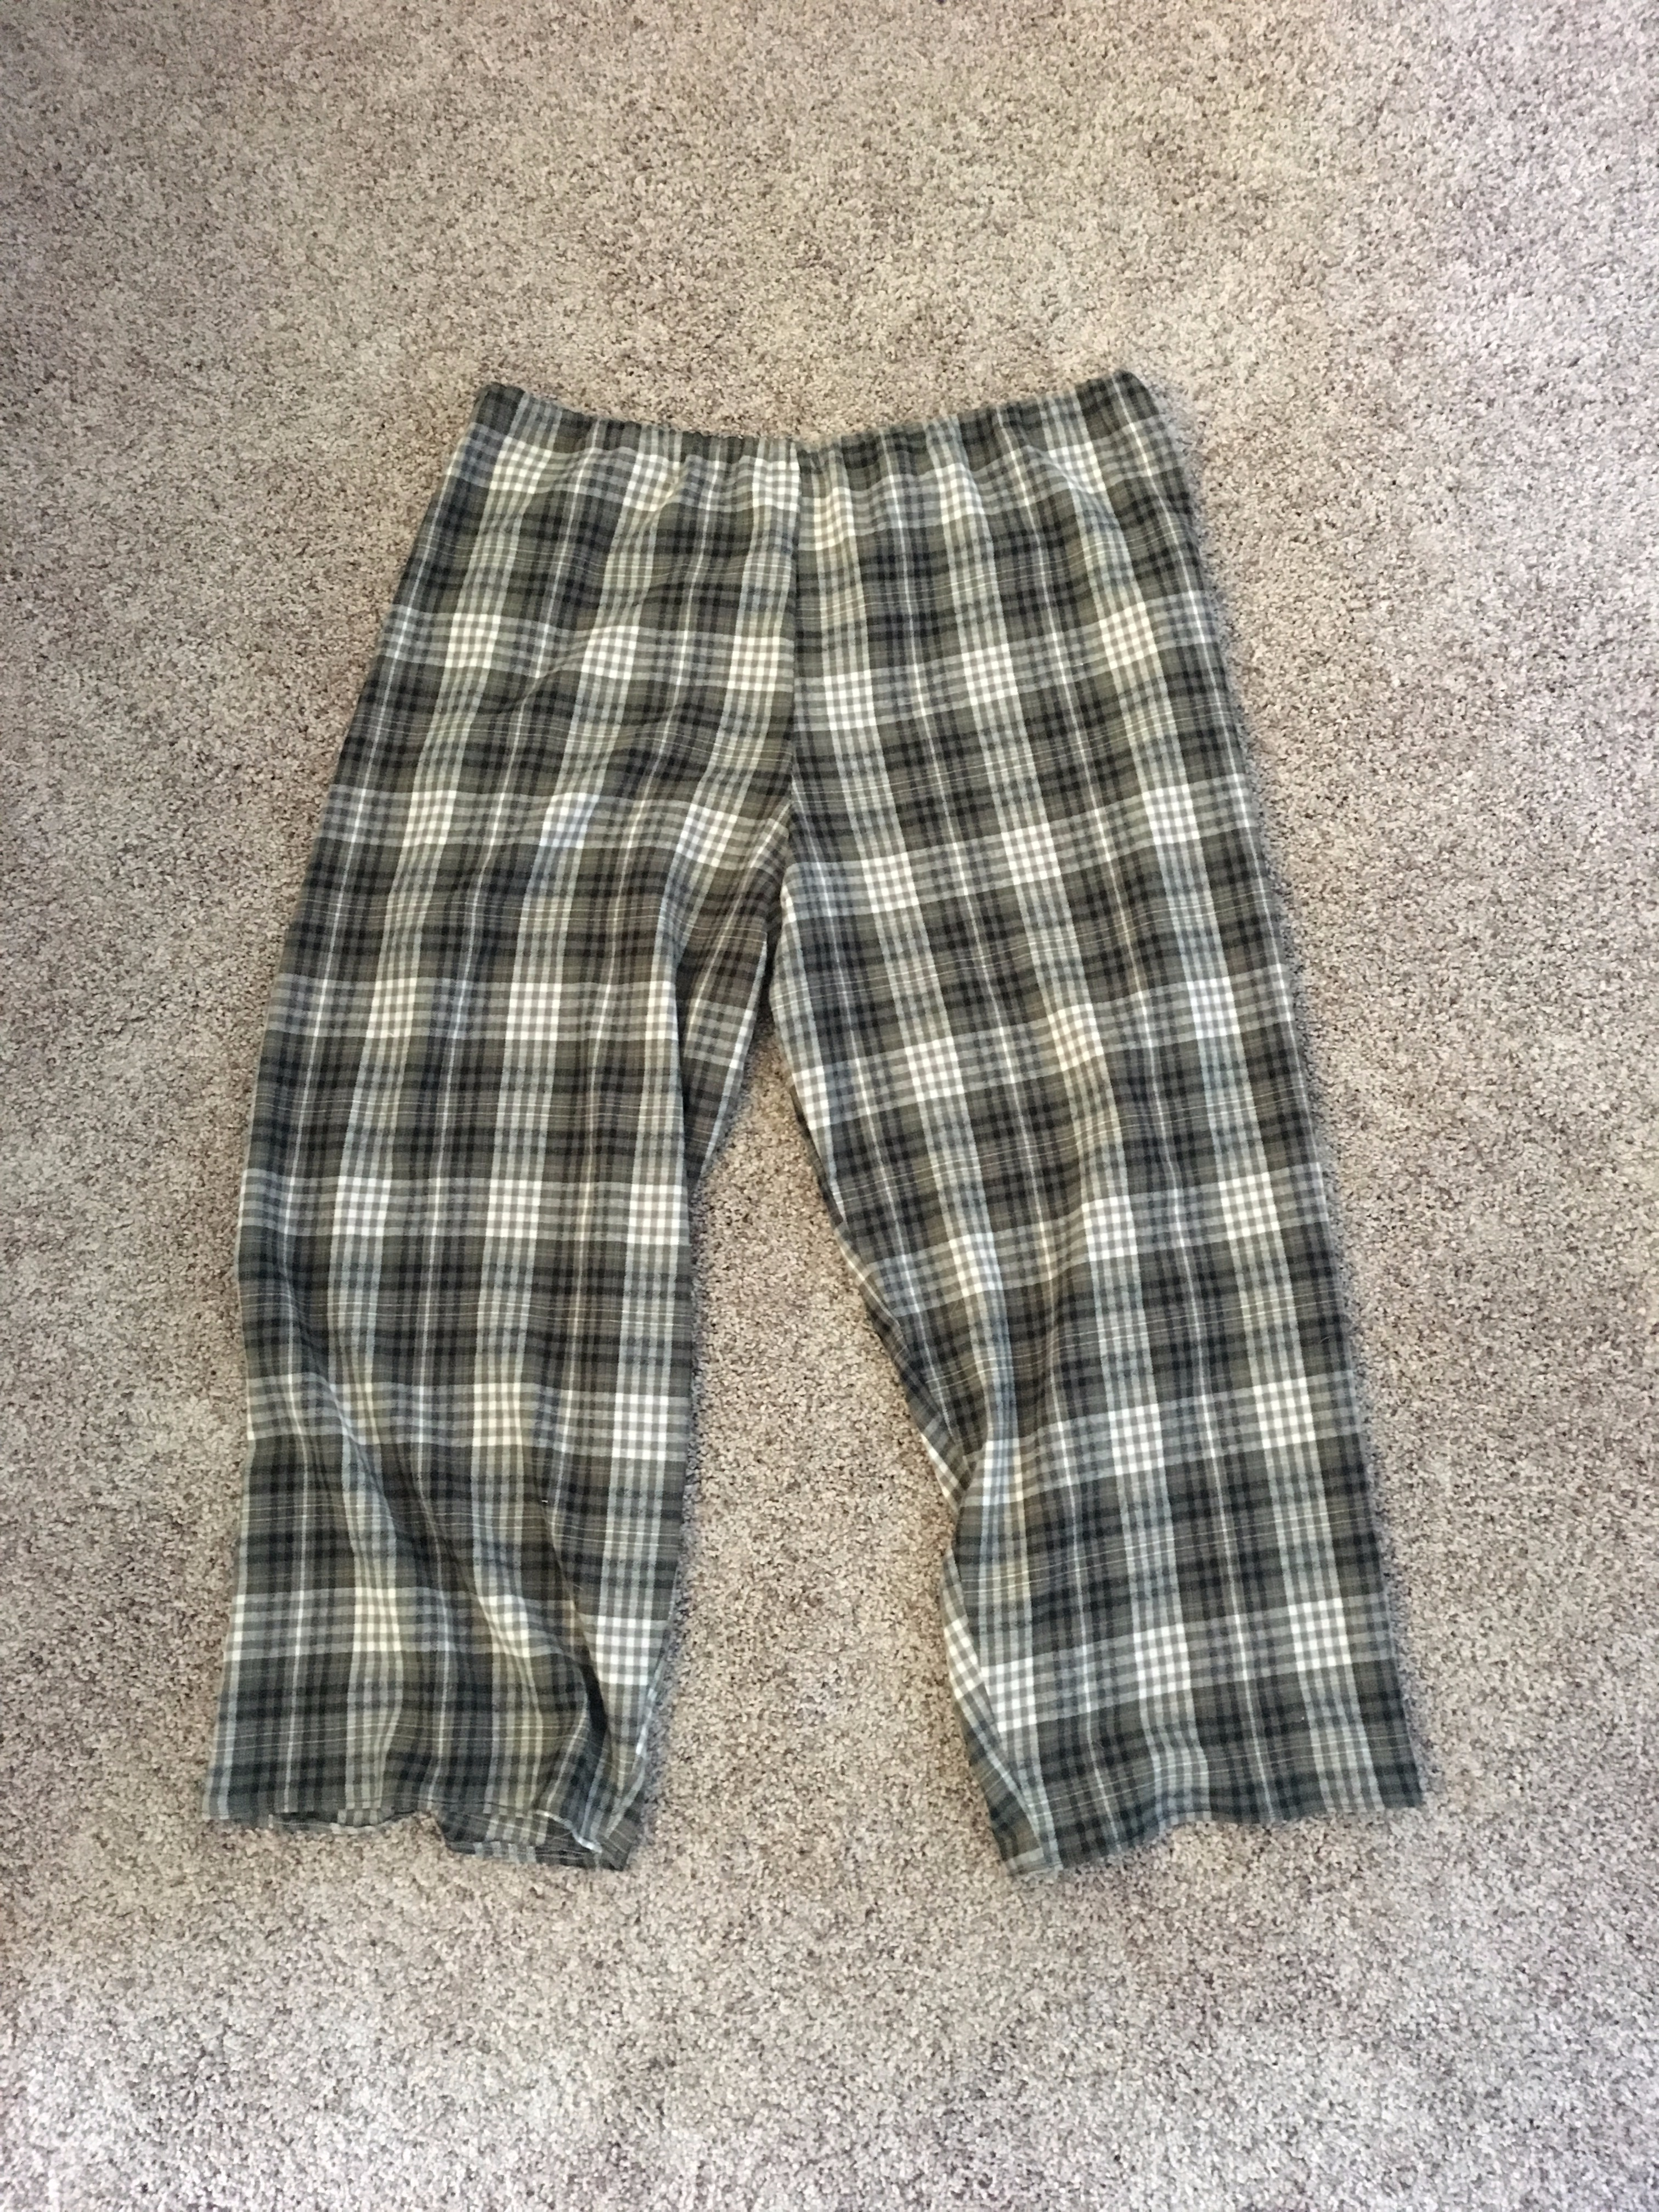 Picture of How to Sew Pajama Pants From a Pattern: the Quick and Dirty Version